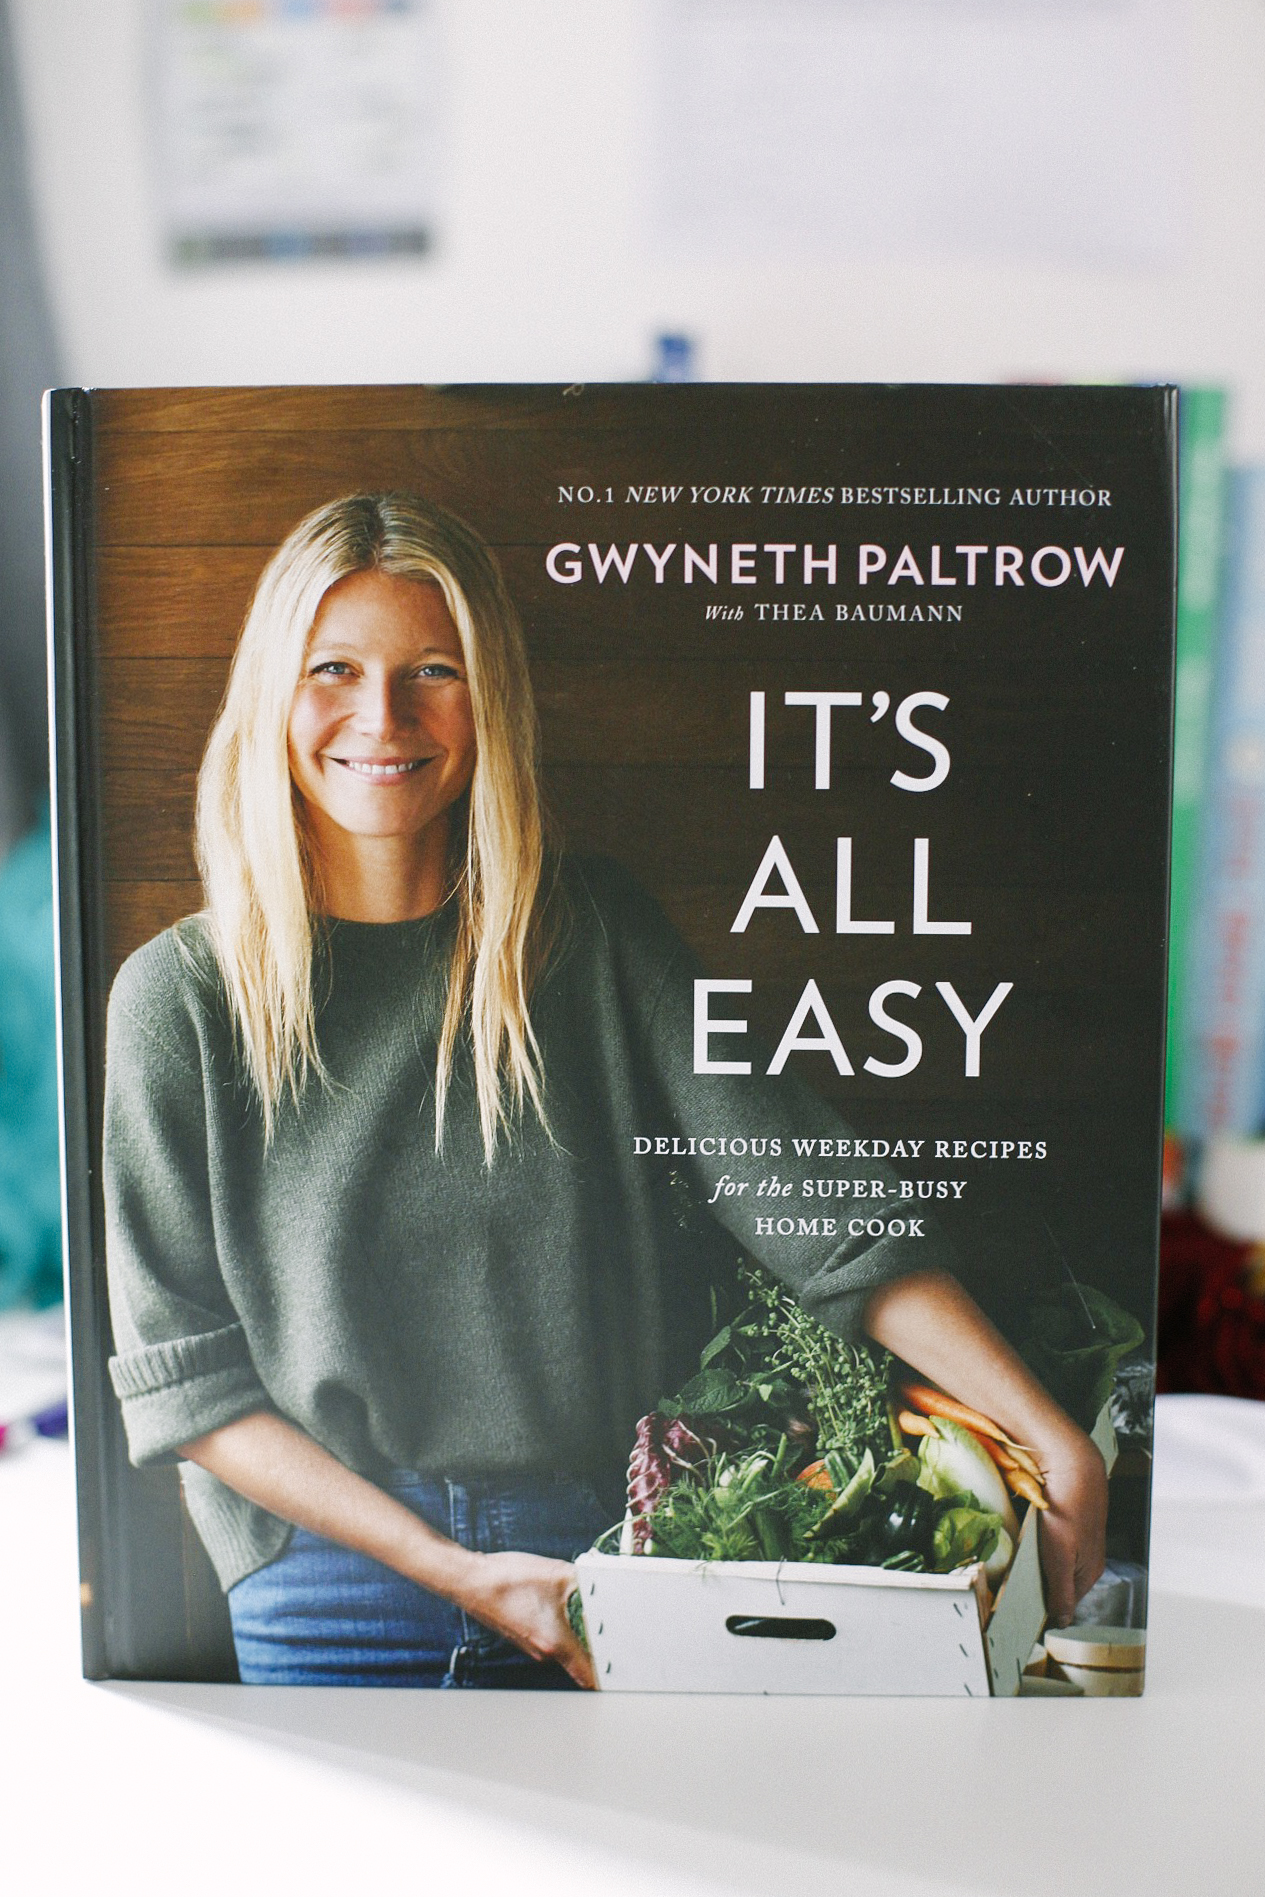 its_all_easy_gwyneth_paltrow_cookbook_review8_0.jpg